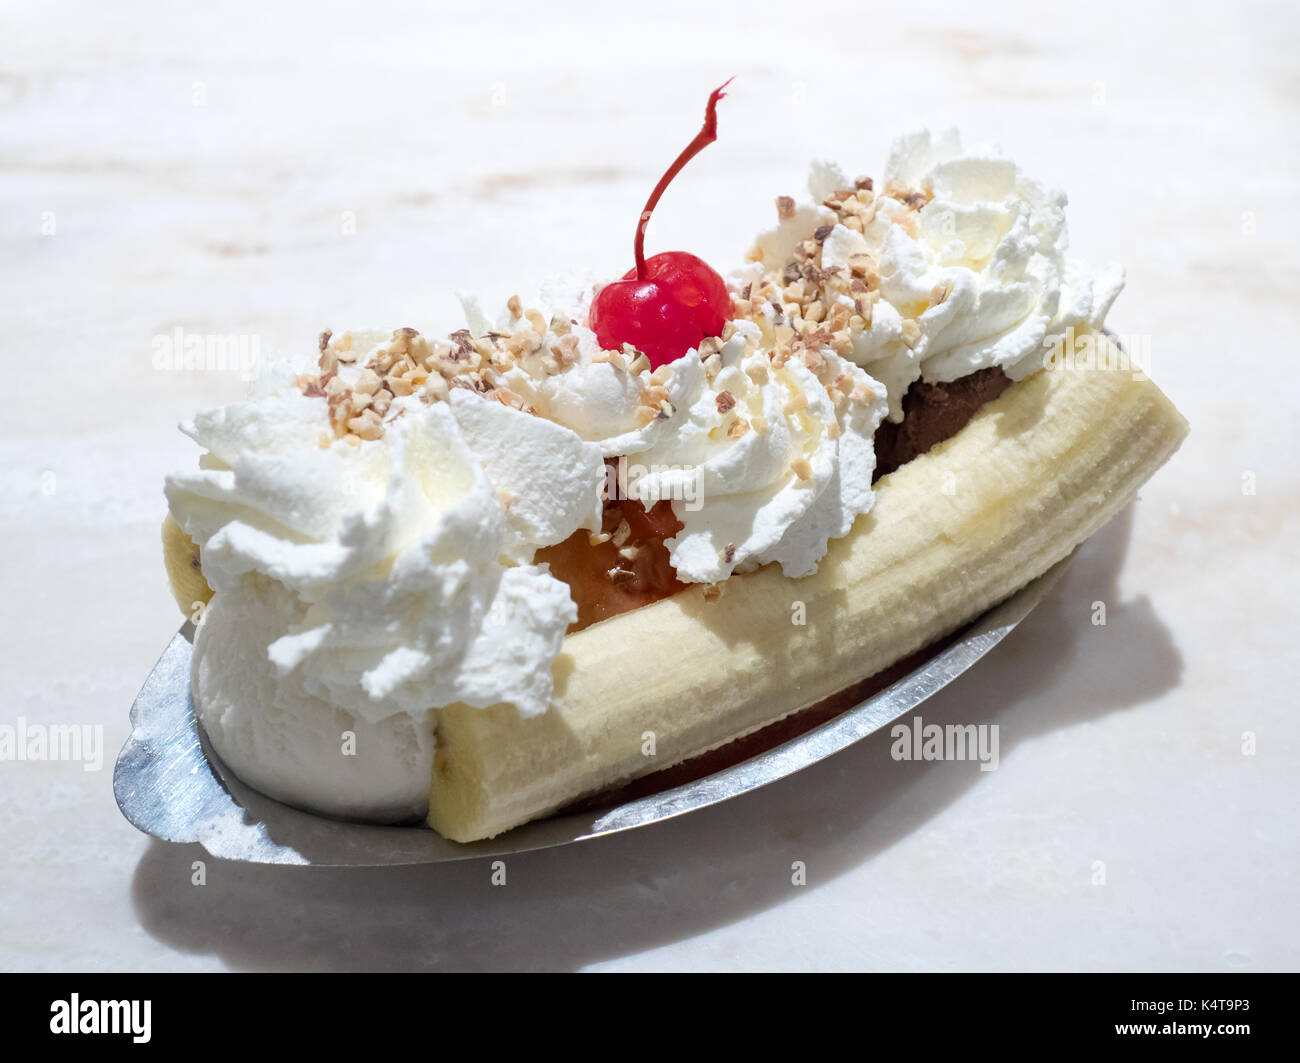 A classic banana split from the Original Ghirardelli Ice Cream and Chocolate Shop at Ghirardelli Square in San Francisco, - Stock Image